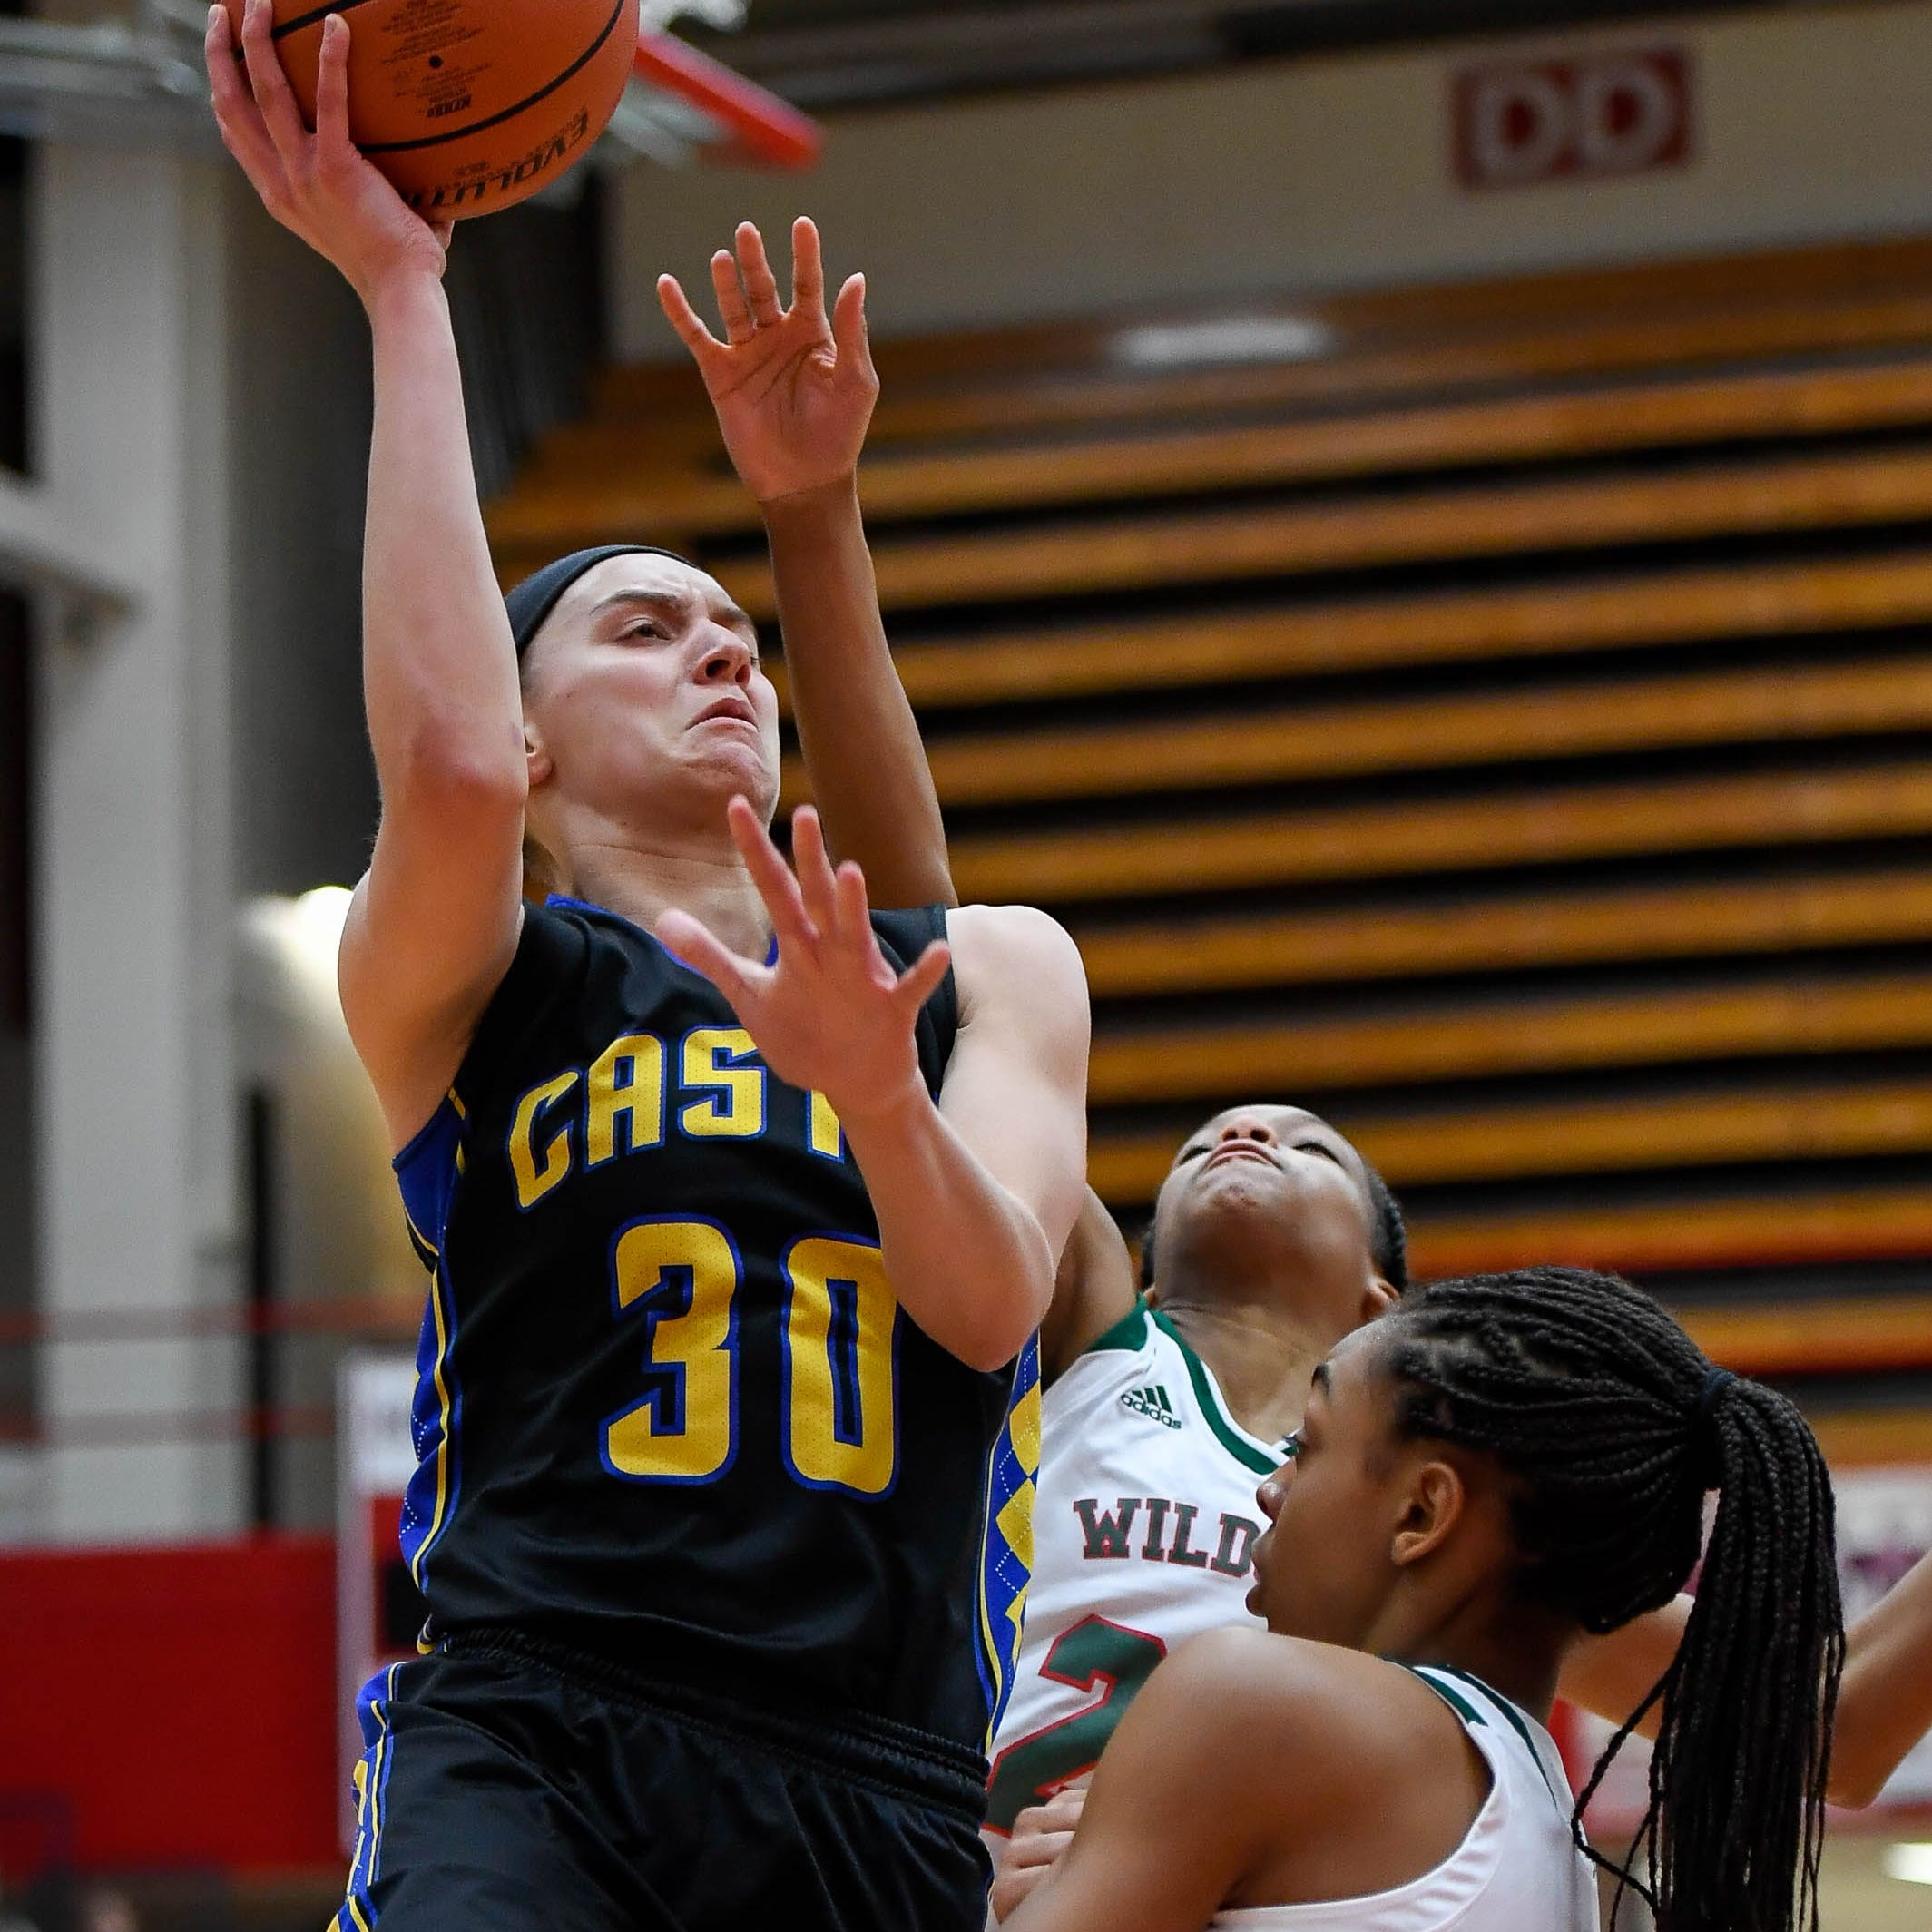 Nunge, Hudson, who lifted teams to semistate, lead all-SIAC girls' basketball team